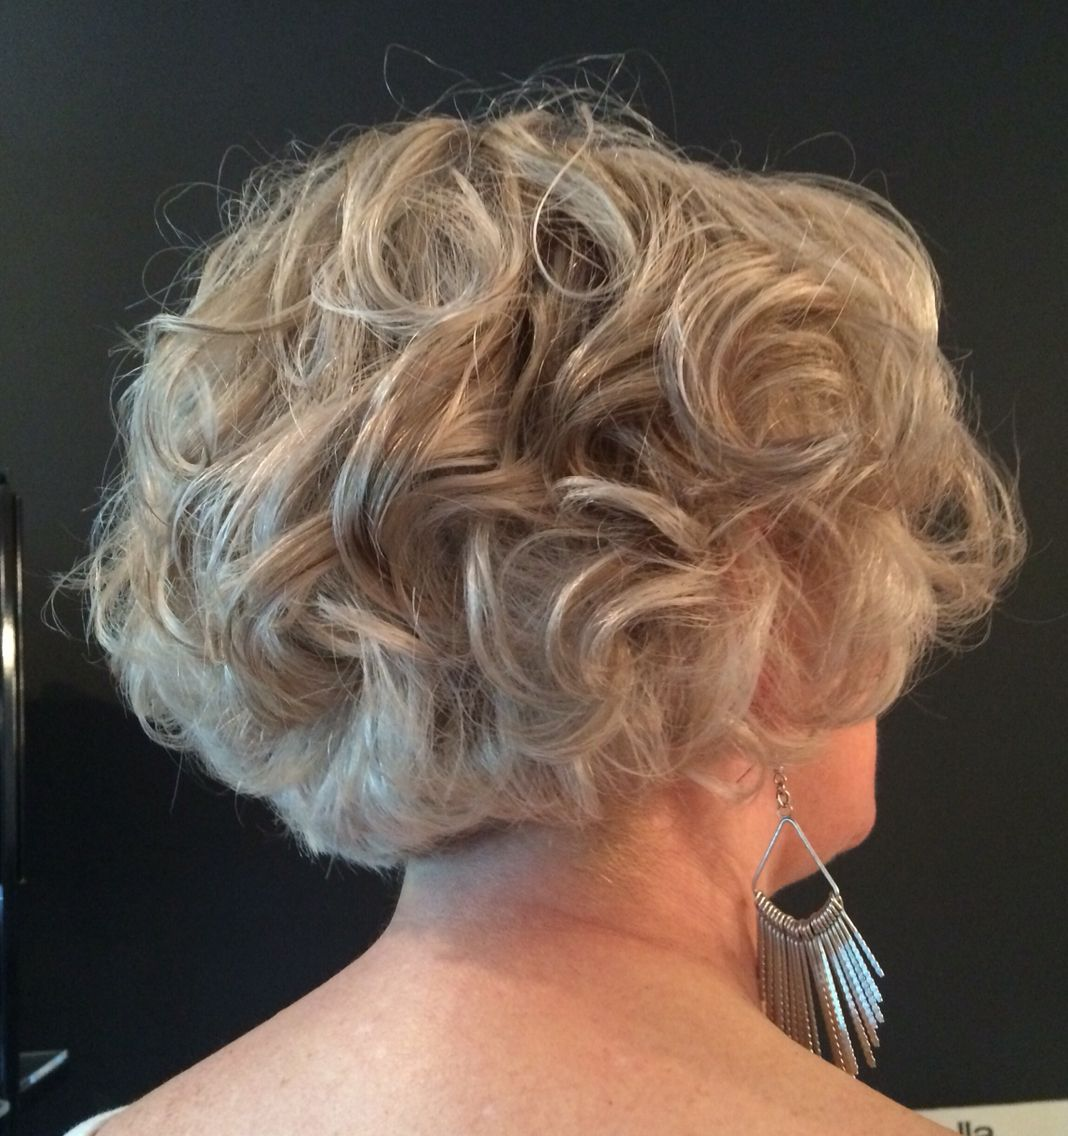 Look Fresh with Short Layered Haircuts for Older Women (Updated 2021) 8aa859d4c7a82070b8329979b2395d81